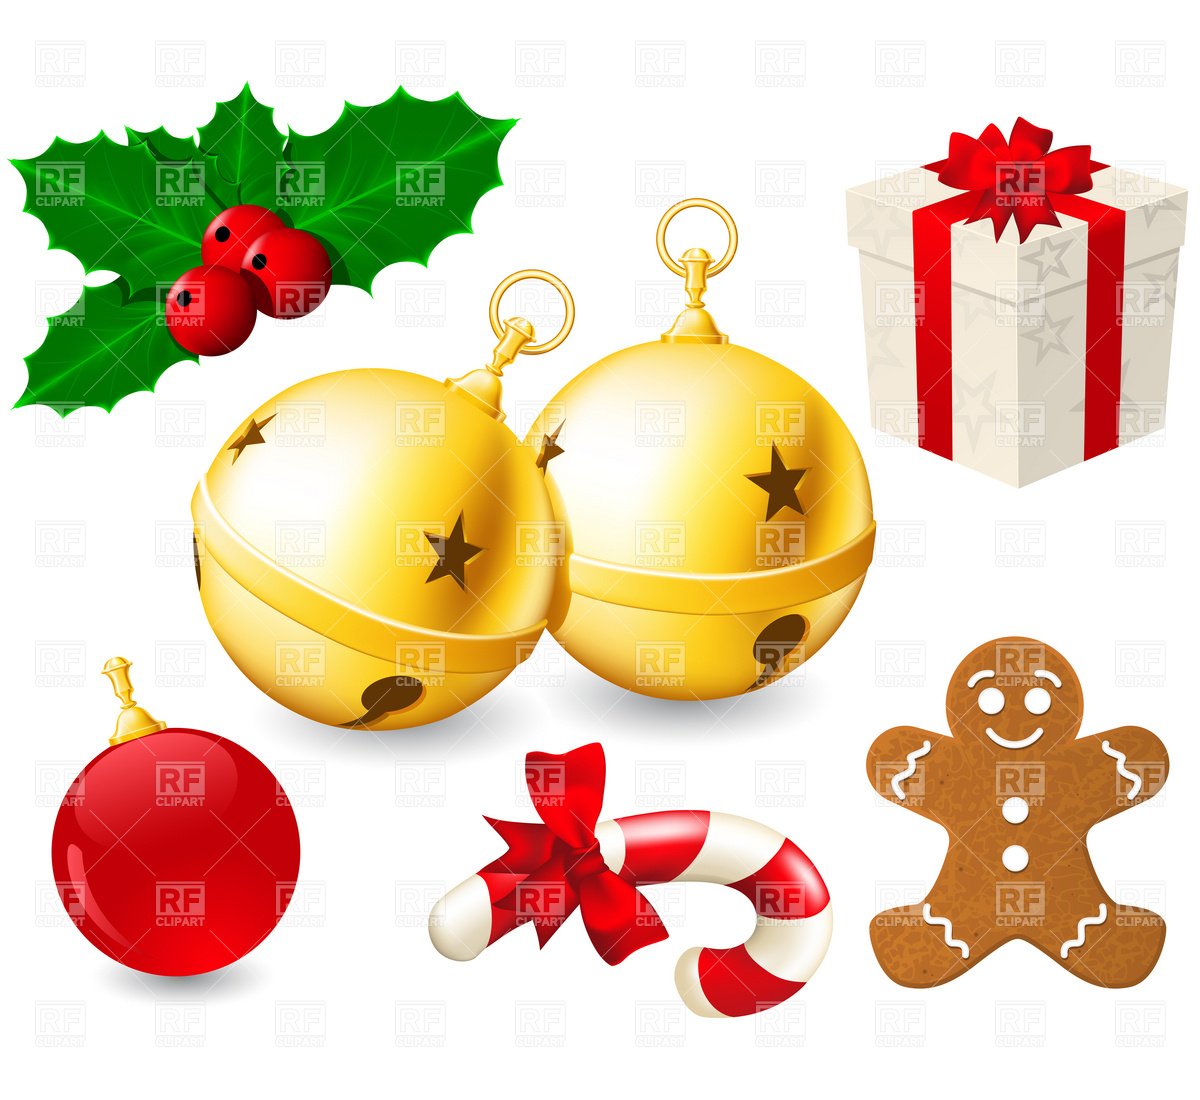 Christmas Jingle Bells Clip Art Free N4 free image.